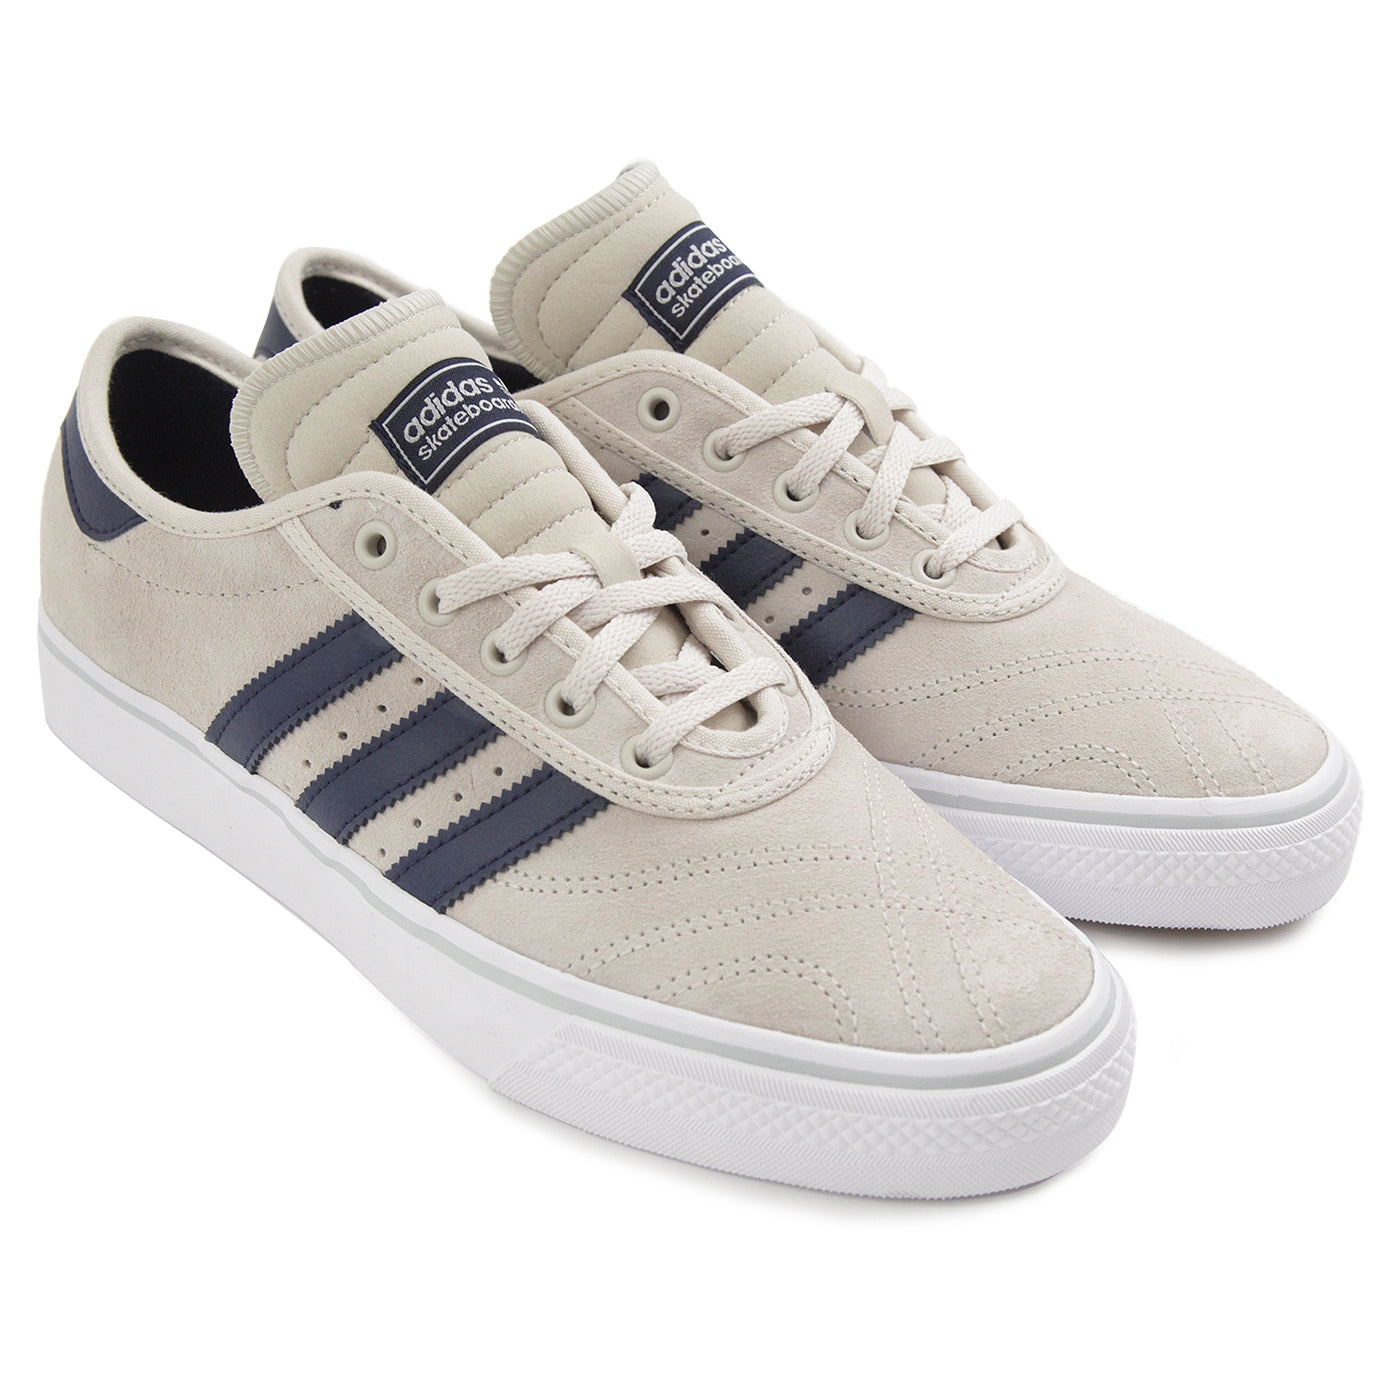 low priced 5079c 25fdb Adi Ease Premiere ADV Shoes in Clear Brown   Collegiate Navy ...